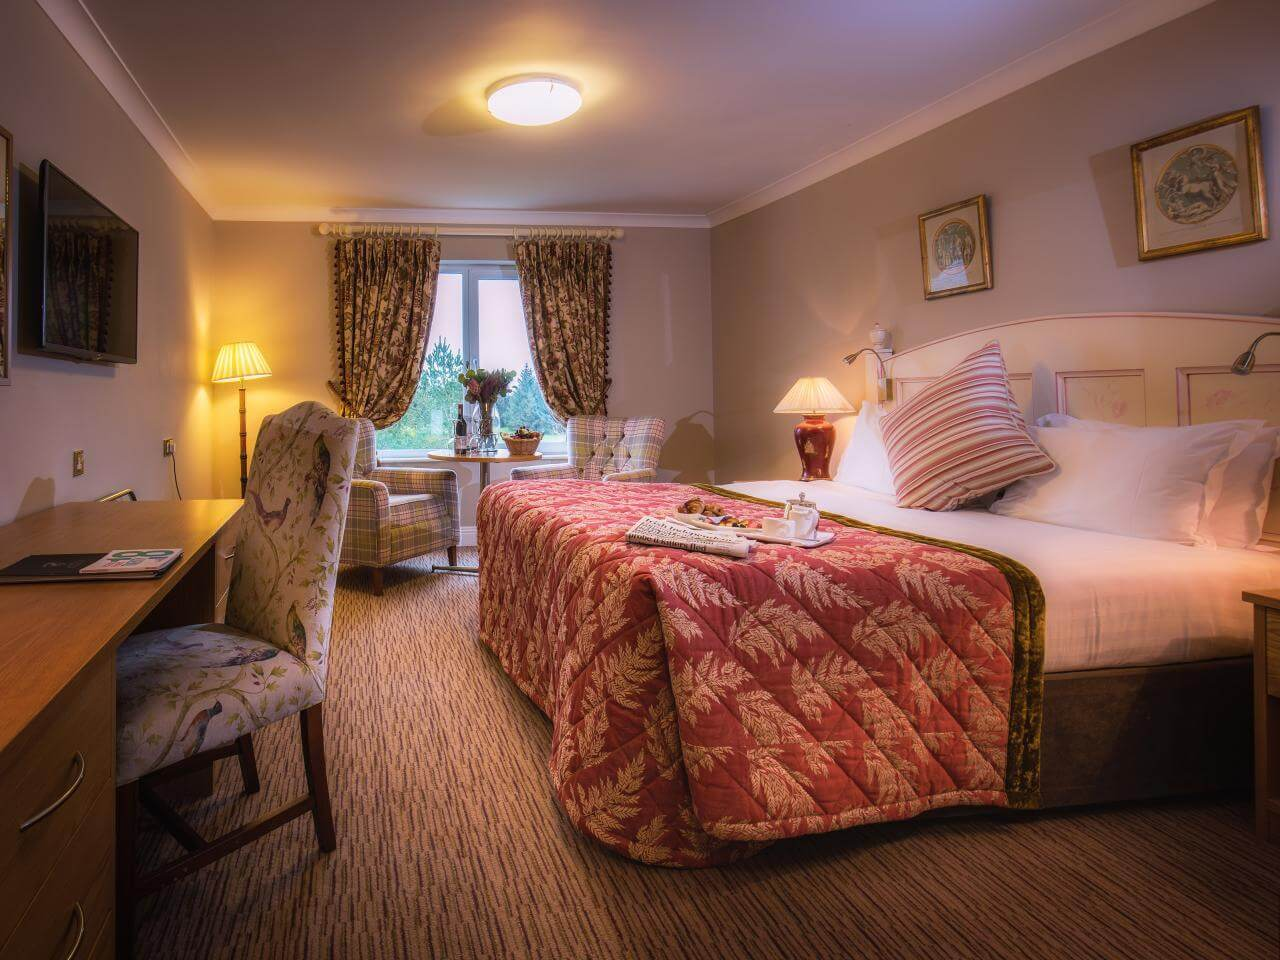 The Inn at Dromoland | 3* Hotel in Clare | Best Rates On Official Site